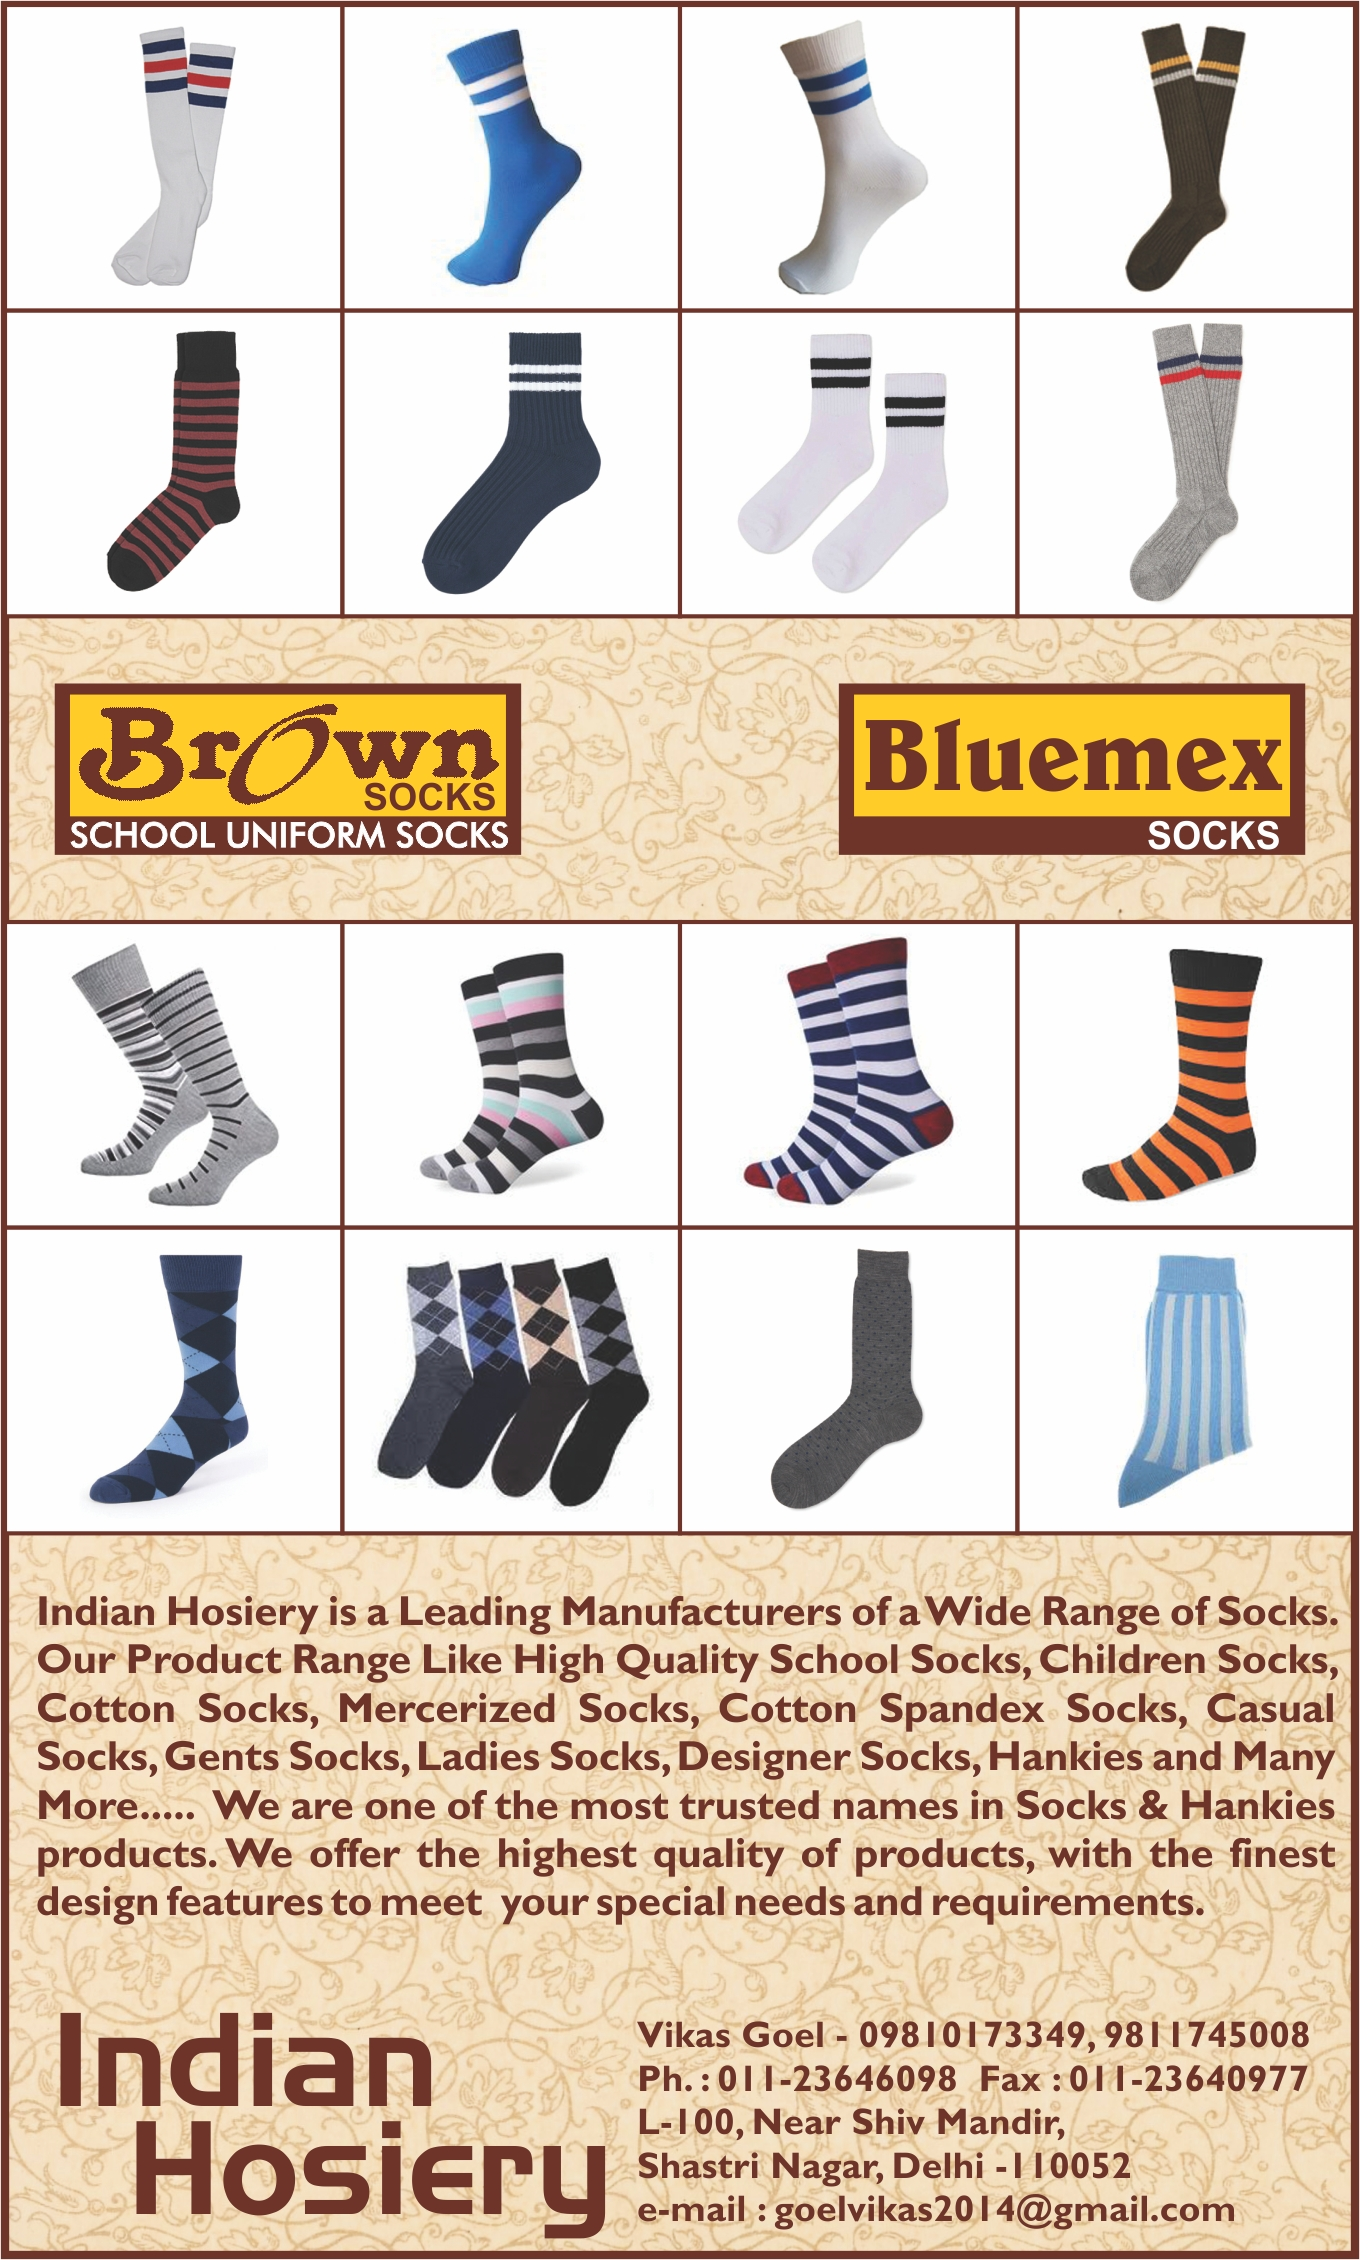 bdb59b4f5d1 INDIAN HOSIERY. Indian Hosiery is a Leading Manufacturers ...